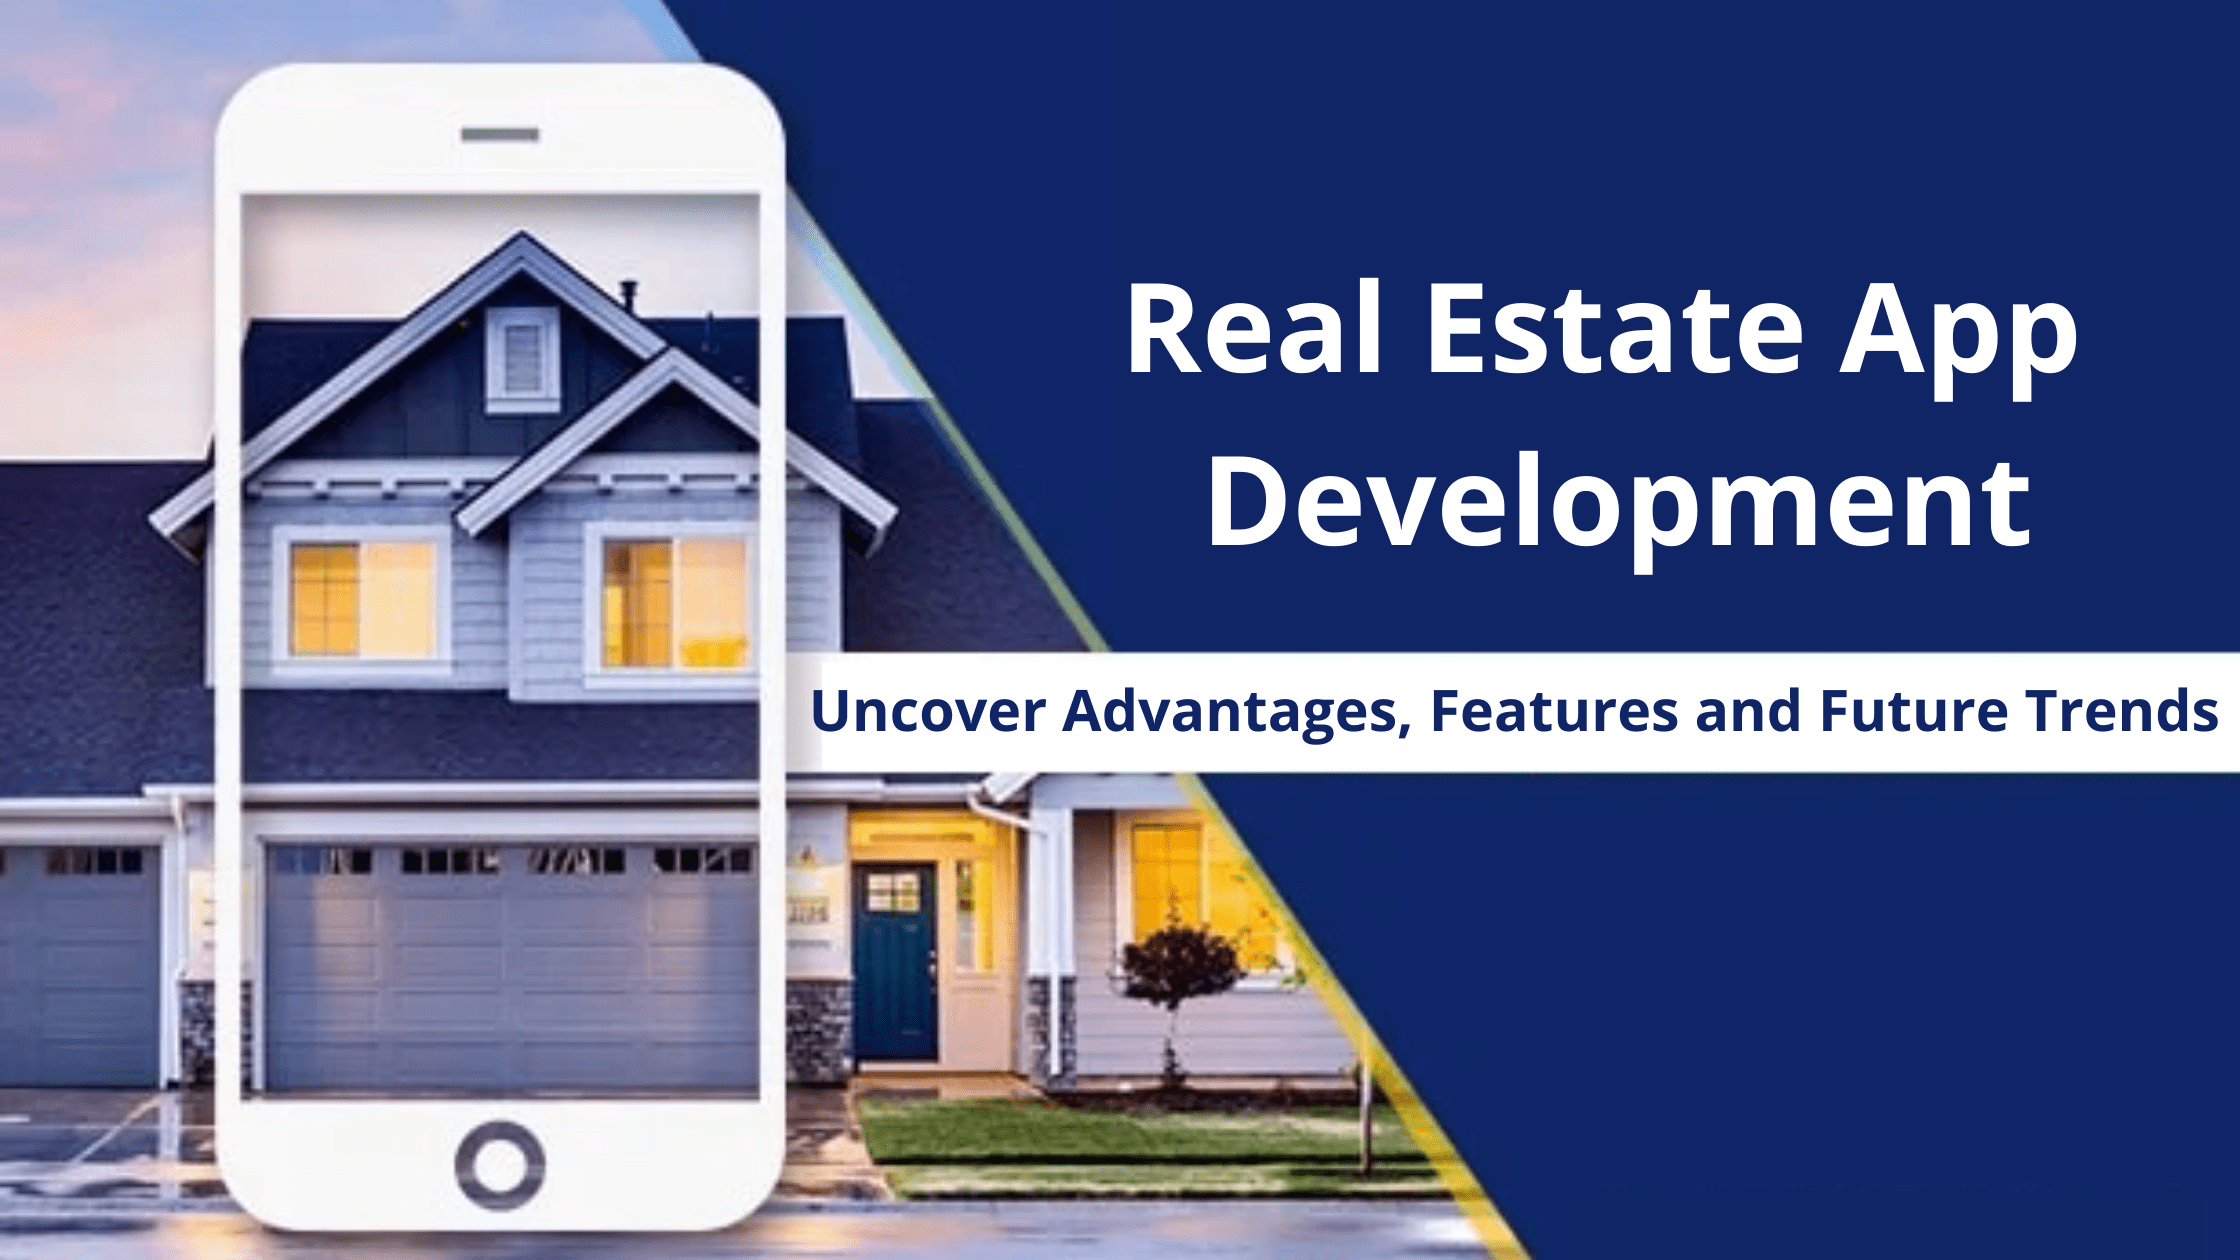 Real Estate App Development: Uncover Advantages and Features